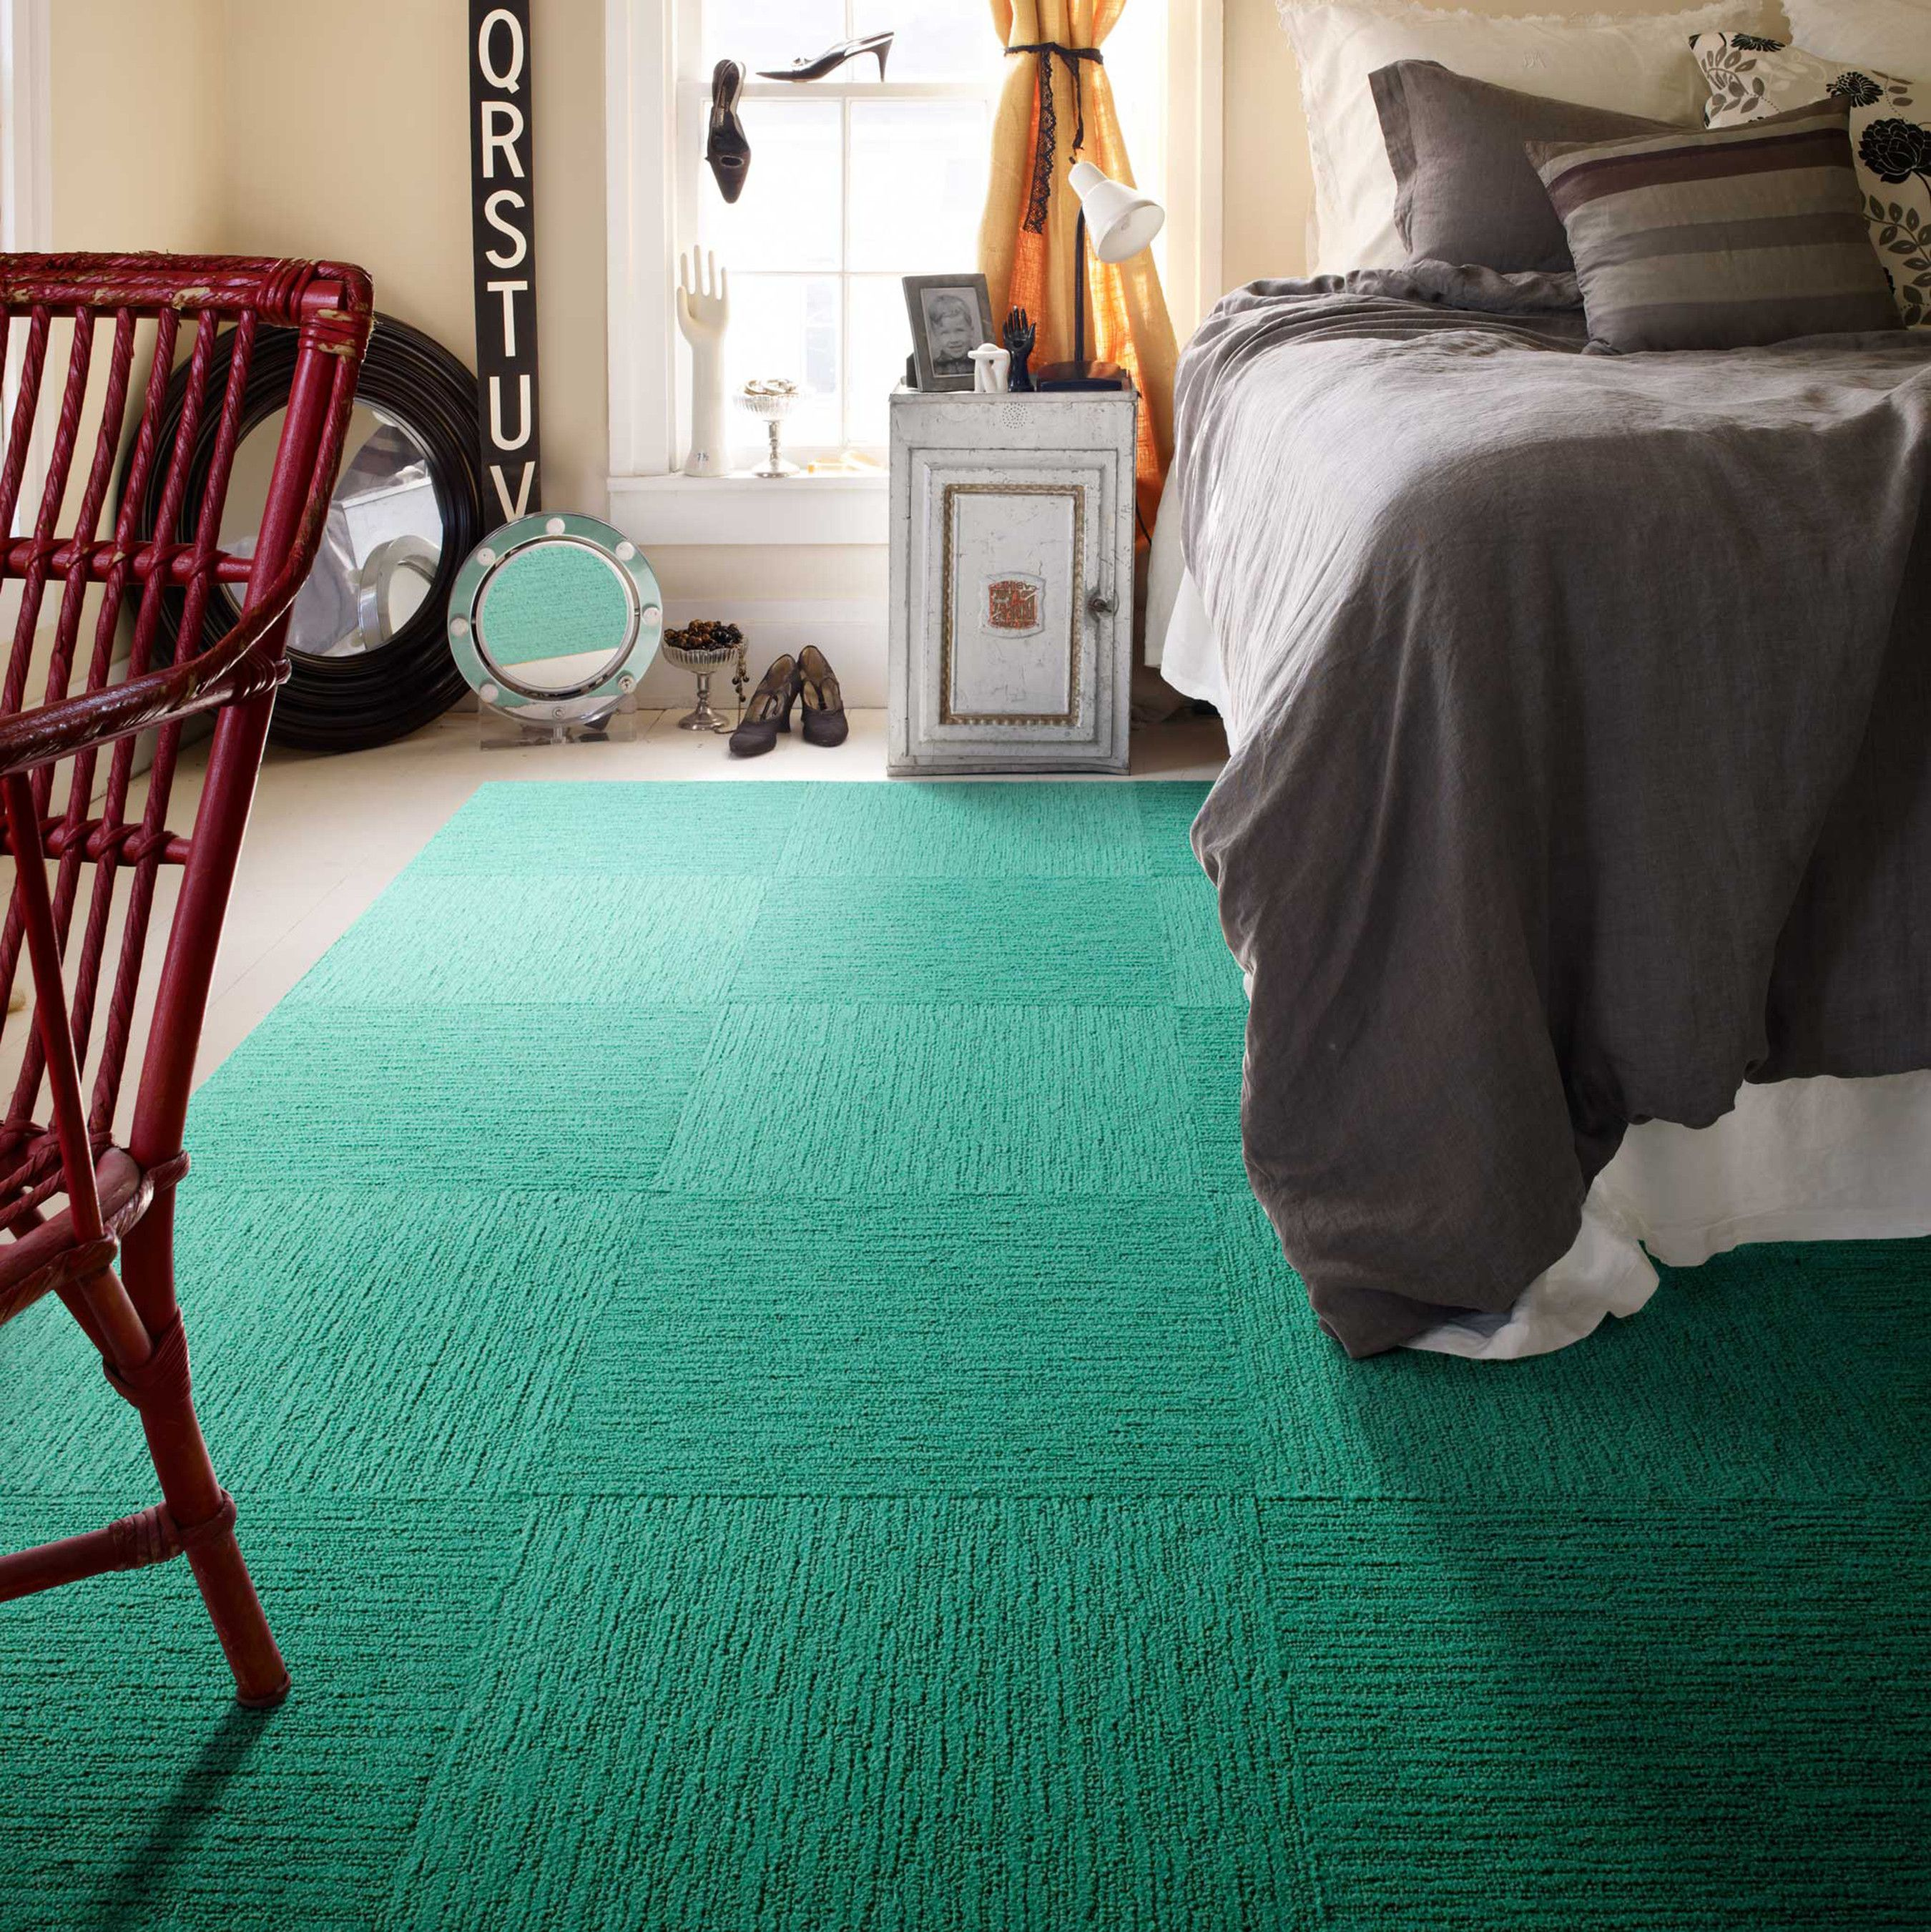 Revamp Your Floors With Pretty Emerald Carpet Tiles Home Decor